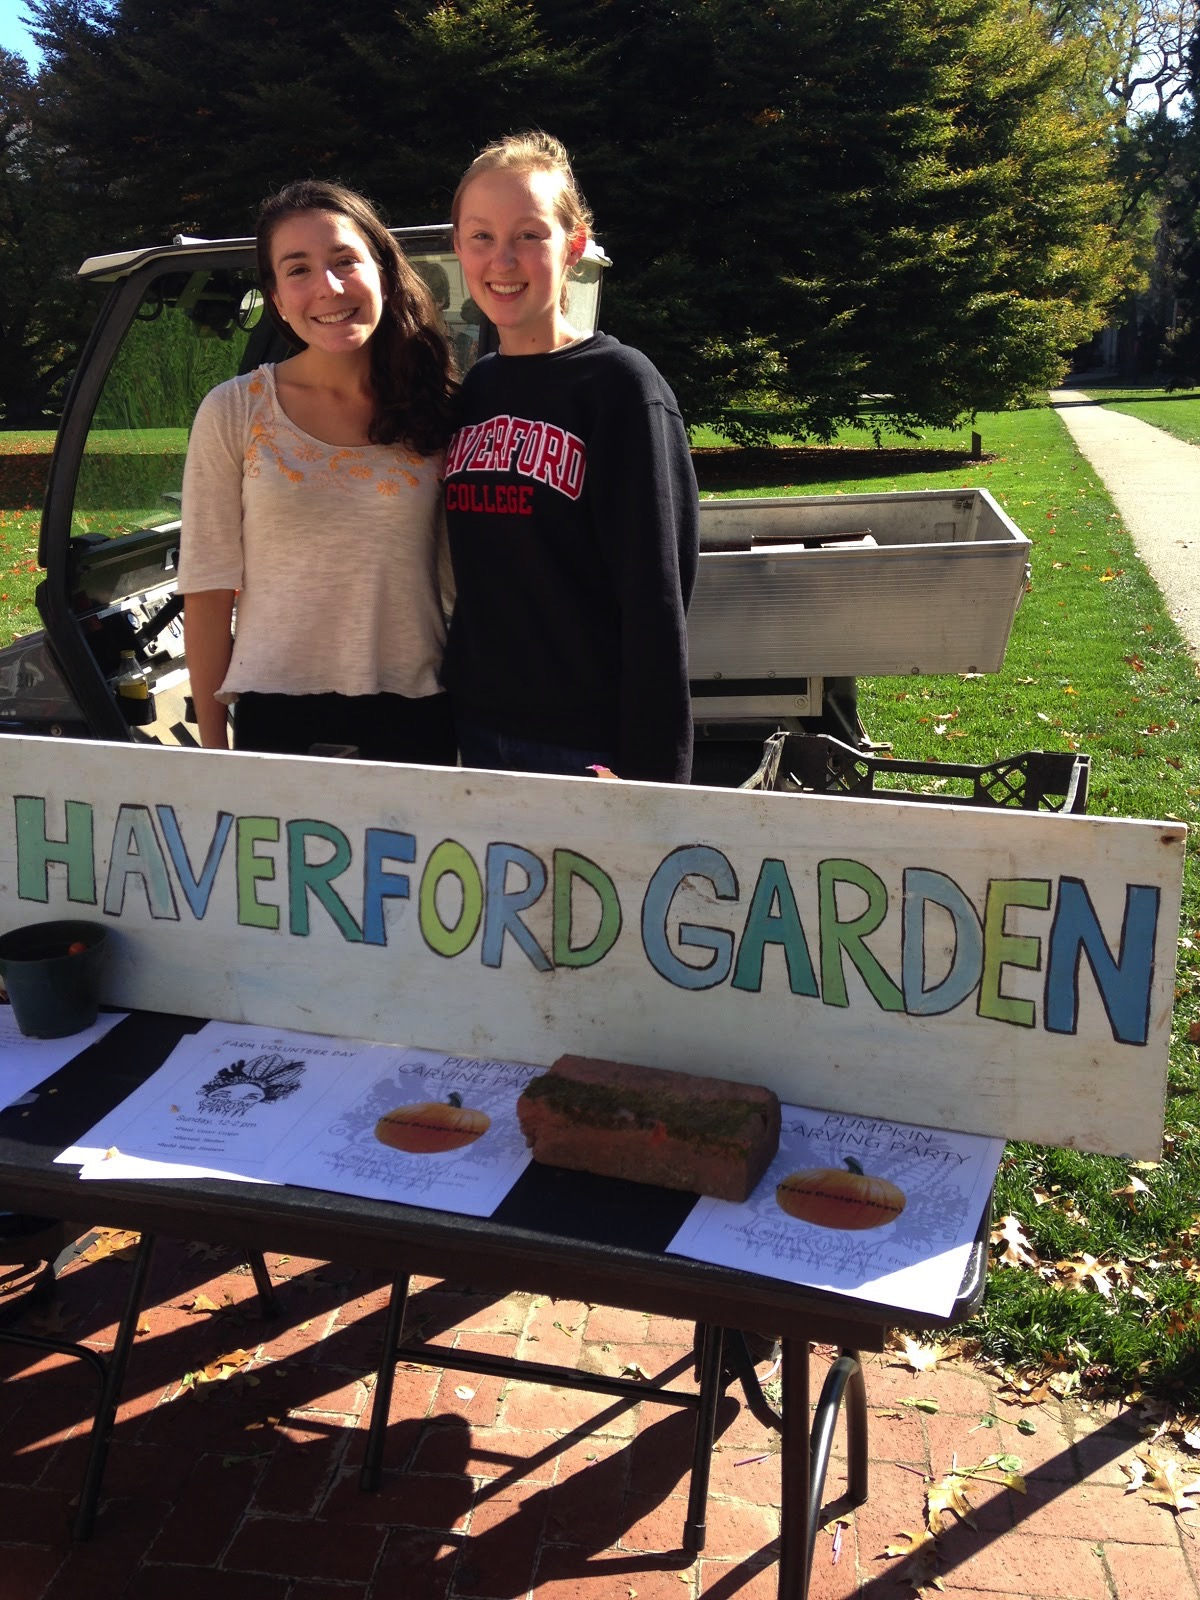 Representatives from the Haverford Garden.